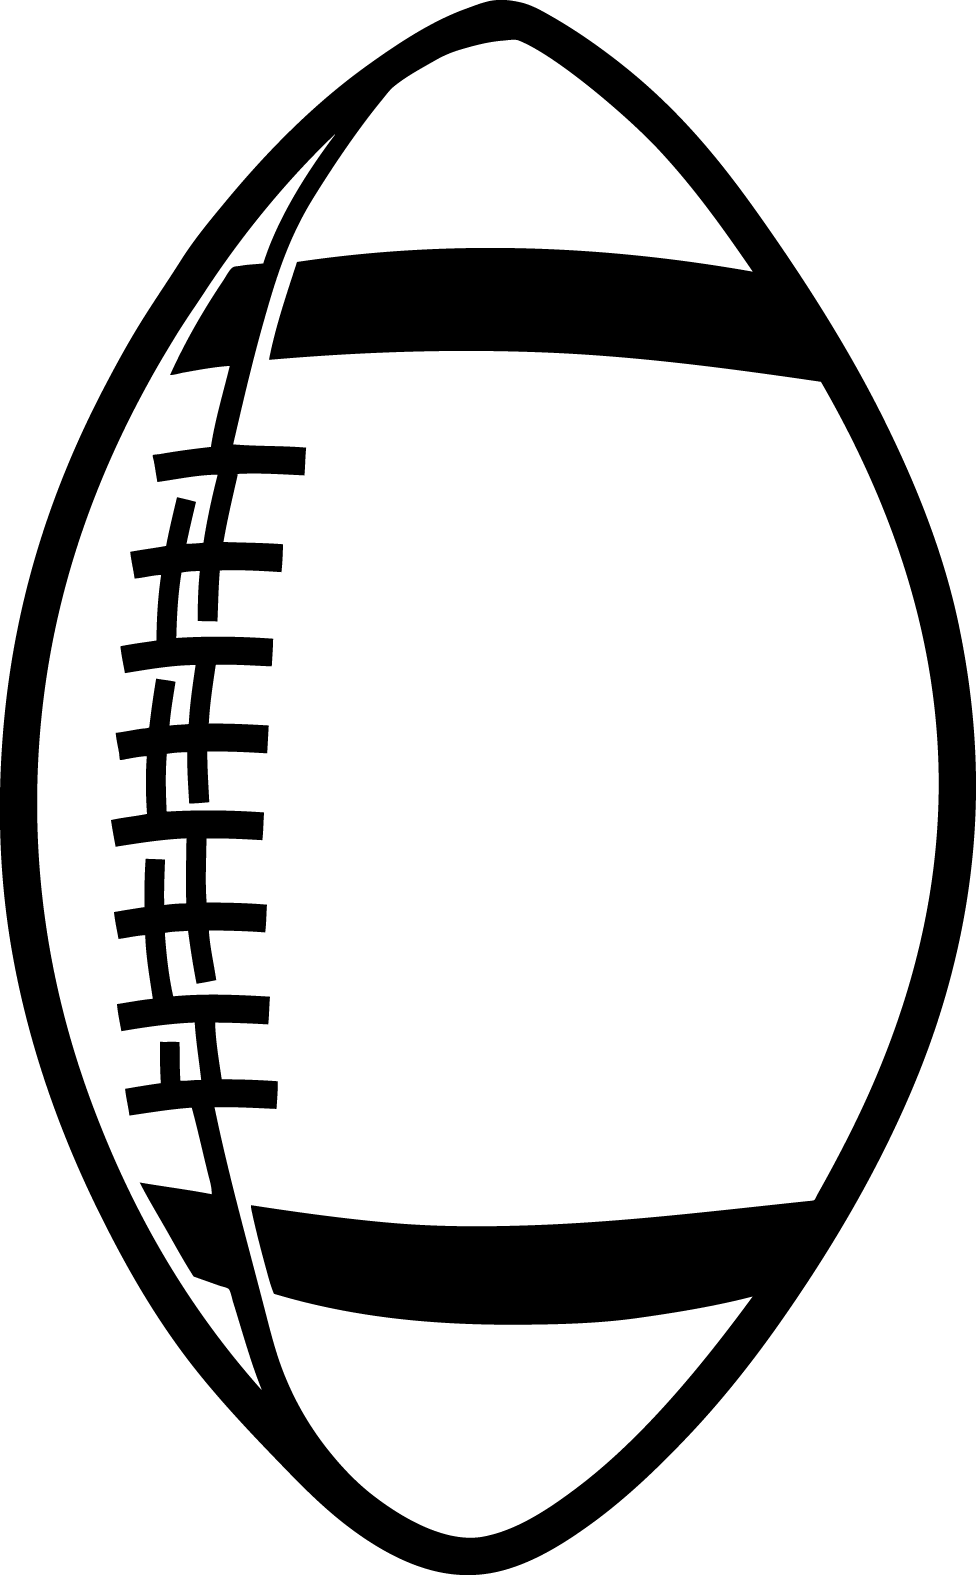 Football outline image free clipart images 2